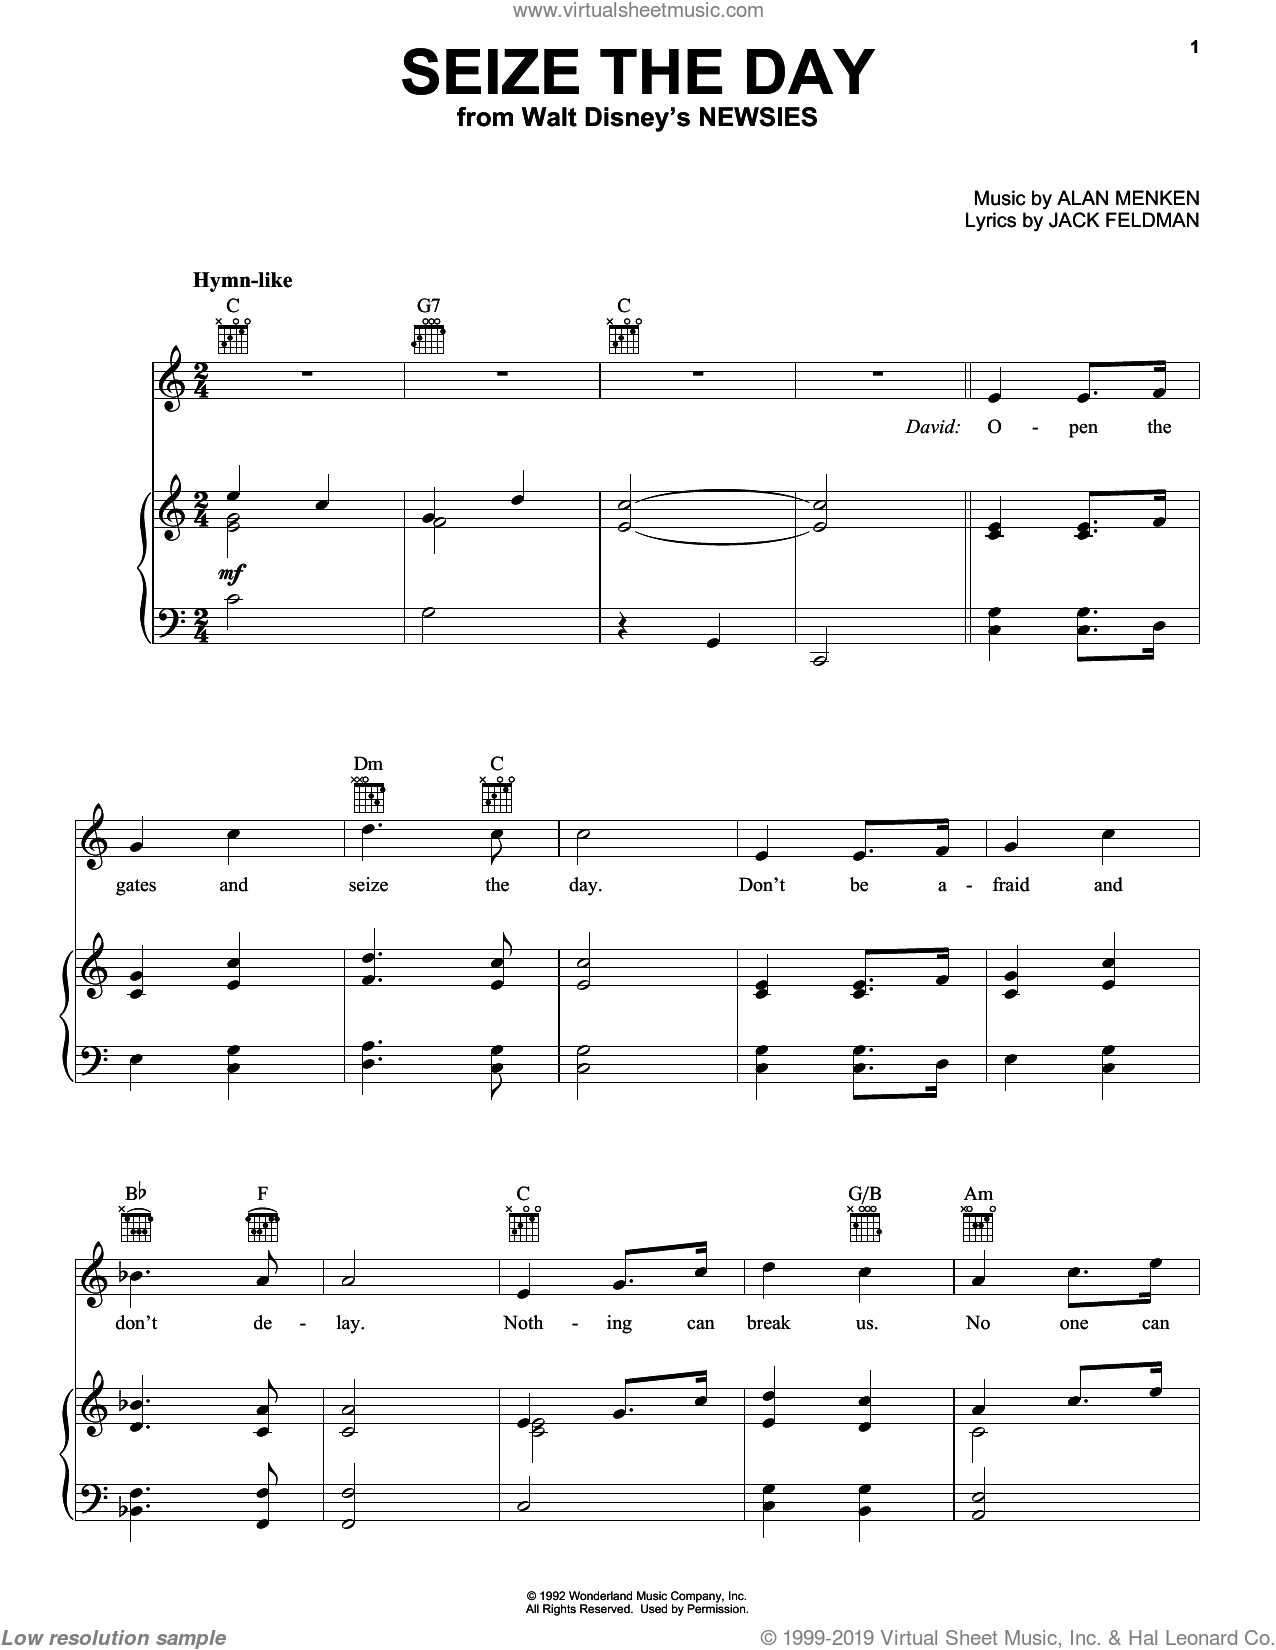 Seize The Day sheet music for voice, piano or guitar by Alan Menken and Jack Feldman, intermediate voice, piano or guitar. Score Image Preview.